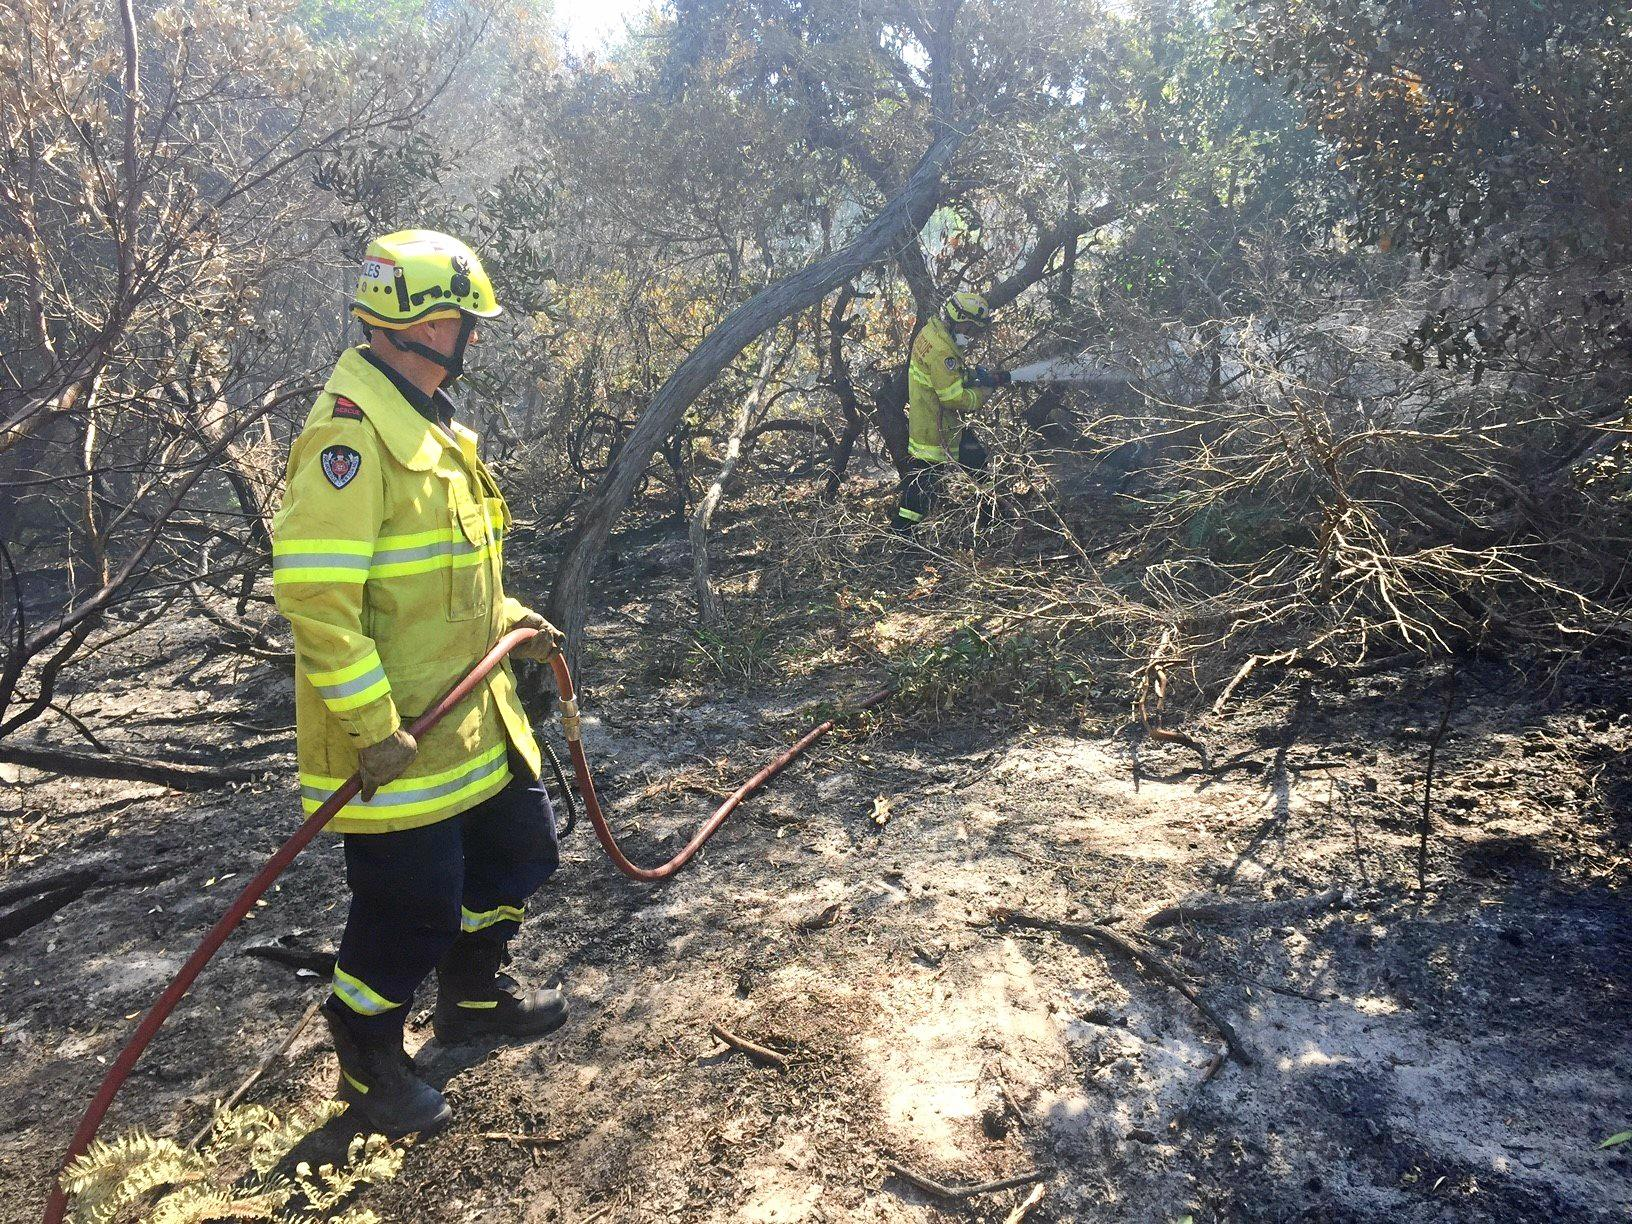 FIRE READY: Fire-fighters from NSW Fire & Rescue were again at the Ballina incident near Anderson Rd, after westerly winds pushed the fire into some unburnt areas within the fire perimeter which still remains secure.